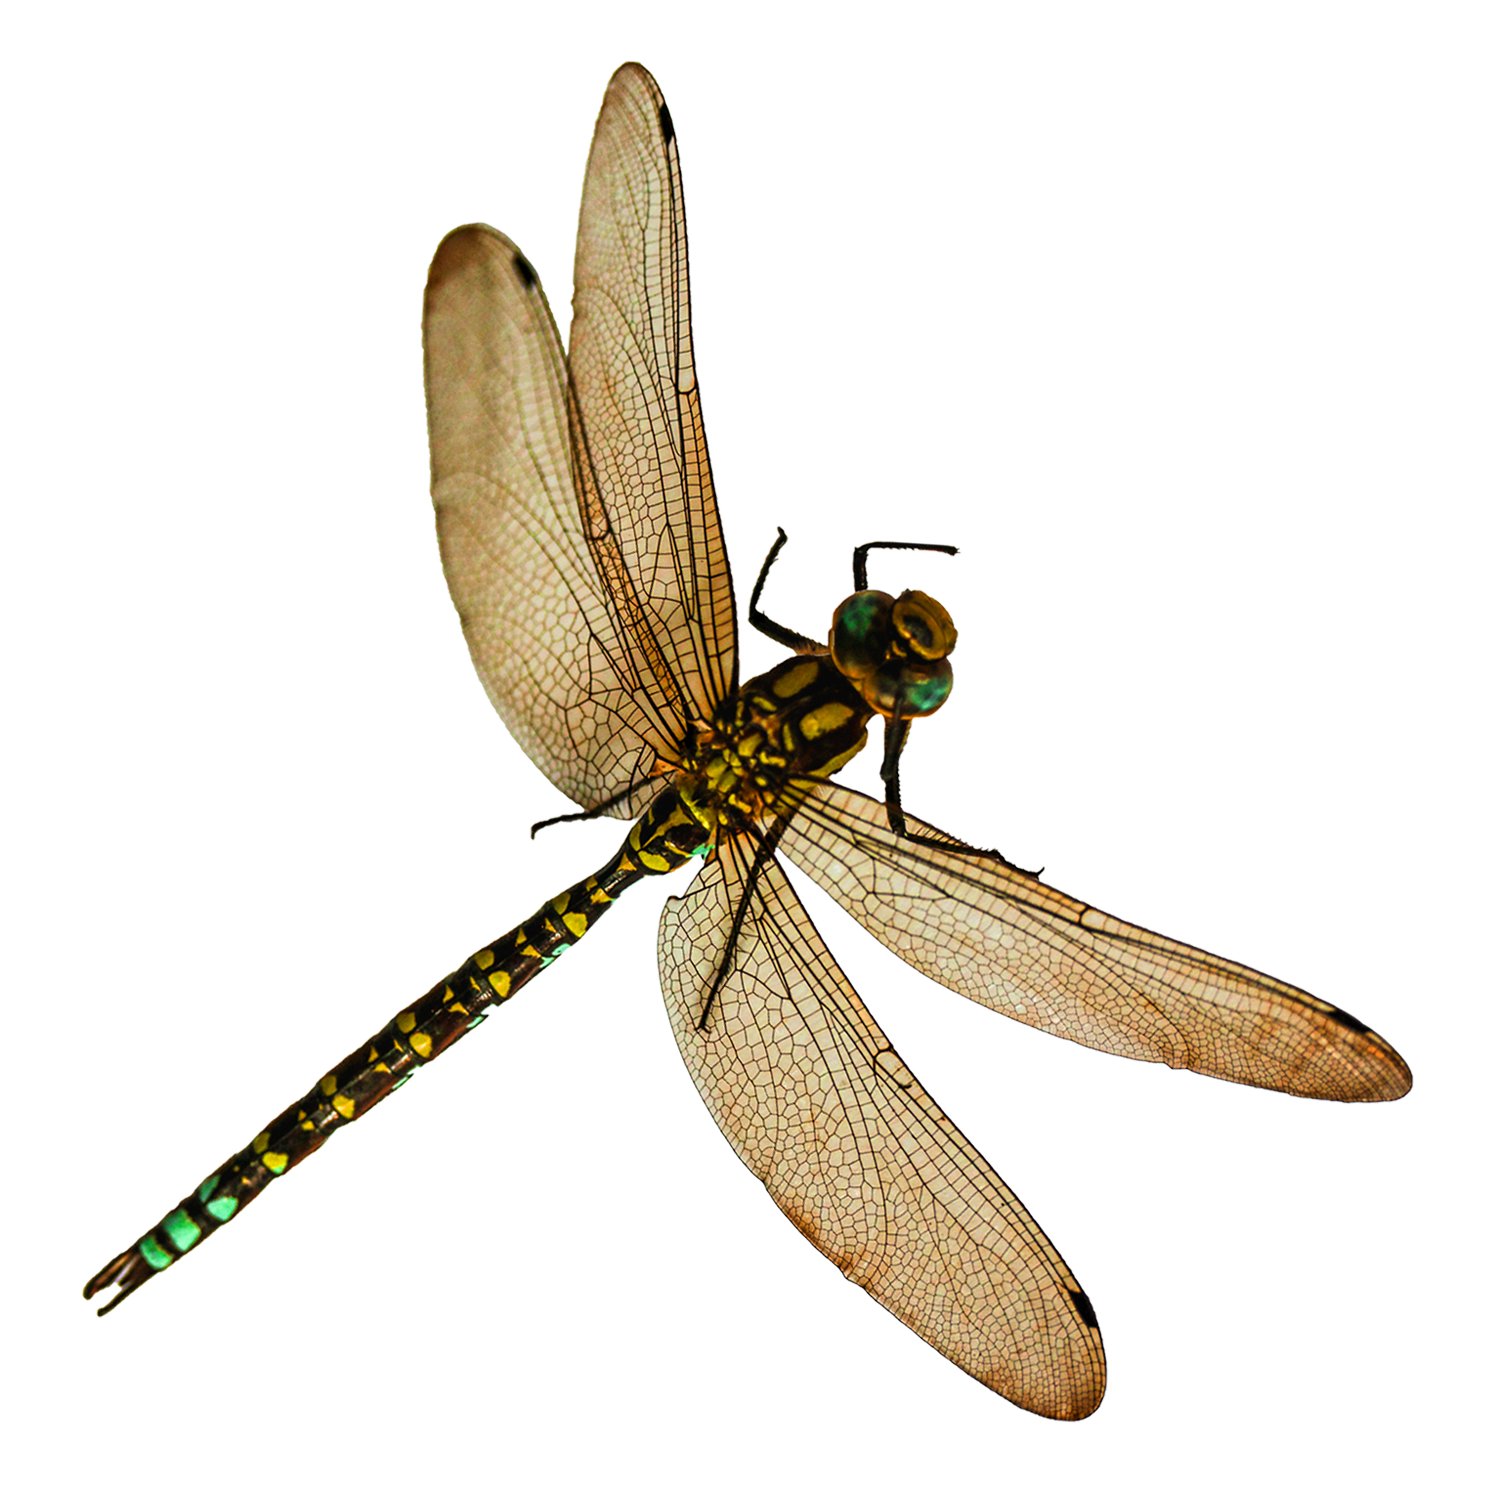 Dragonfly Png Image - Insects, Transparent background PNG HD thumbnail